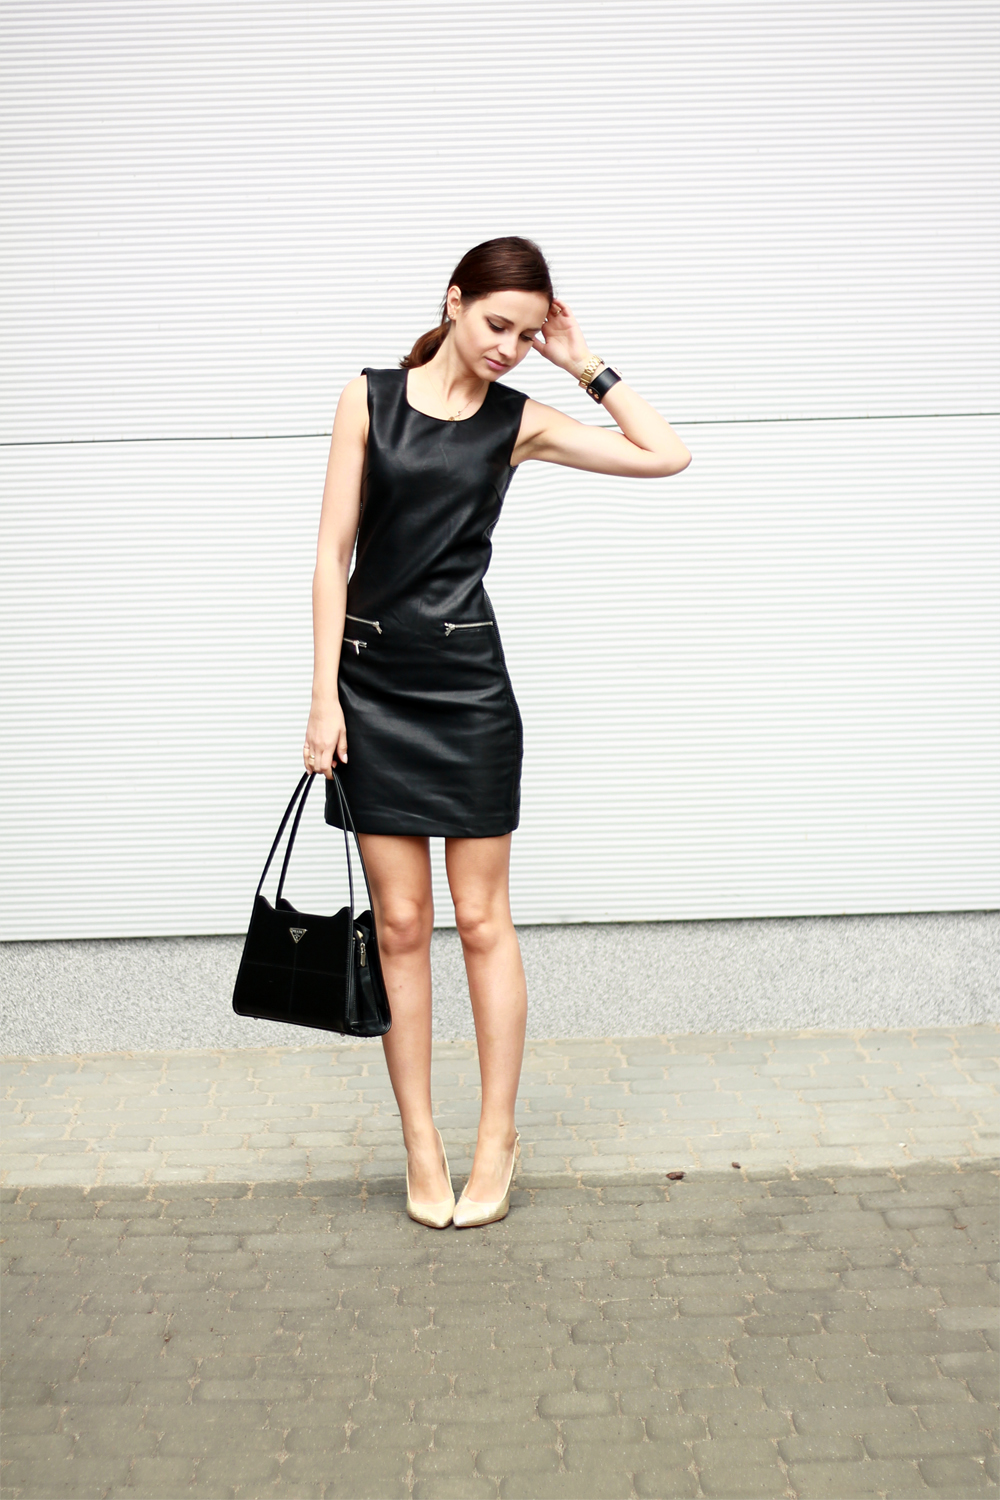 fashion blog street style chic vogue tumblr girl black dress lilicons 2